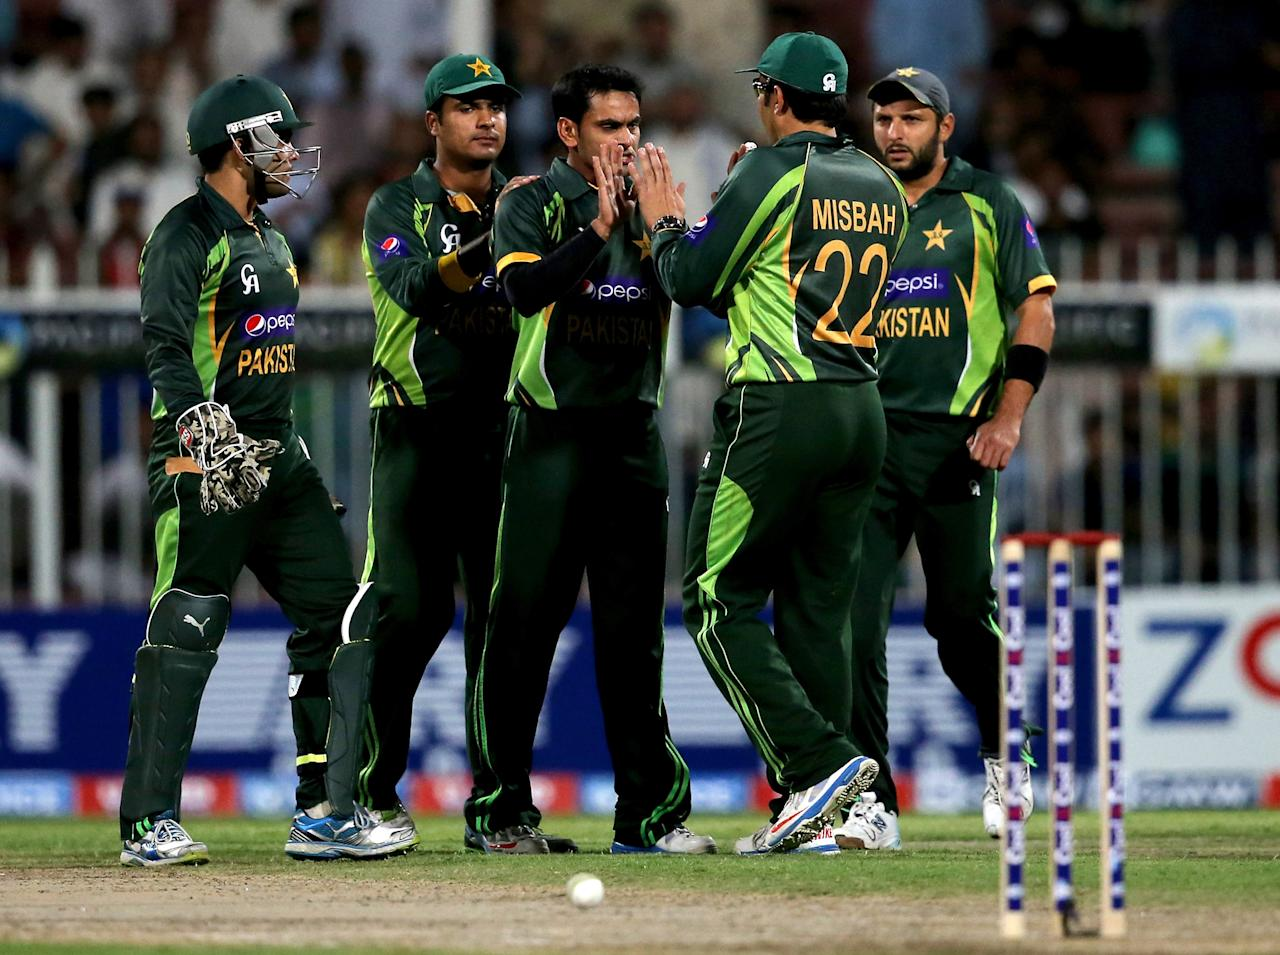 SHARJAH, UNITED ARAB EMIRATES - DECEMBER 18: Players of Pakistan celebrate  during the first One-Day International (ODI ) match between Sri Lanka and Pakistan at the Sharjah Cricket Stadium on December 18, 2013 in Sharjah, United Arab Emirates.  (Photo by Francois Nel/Getty Images)